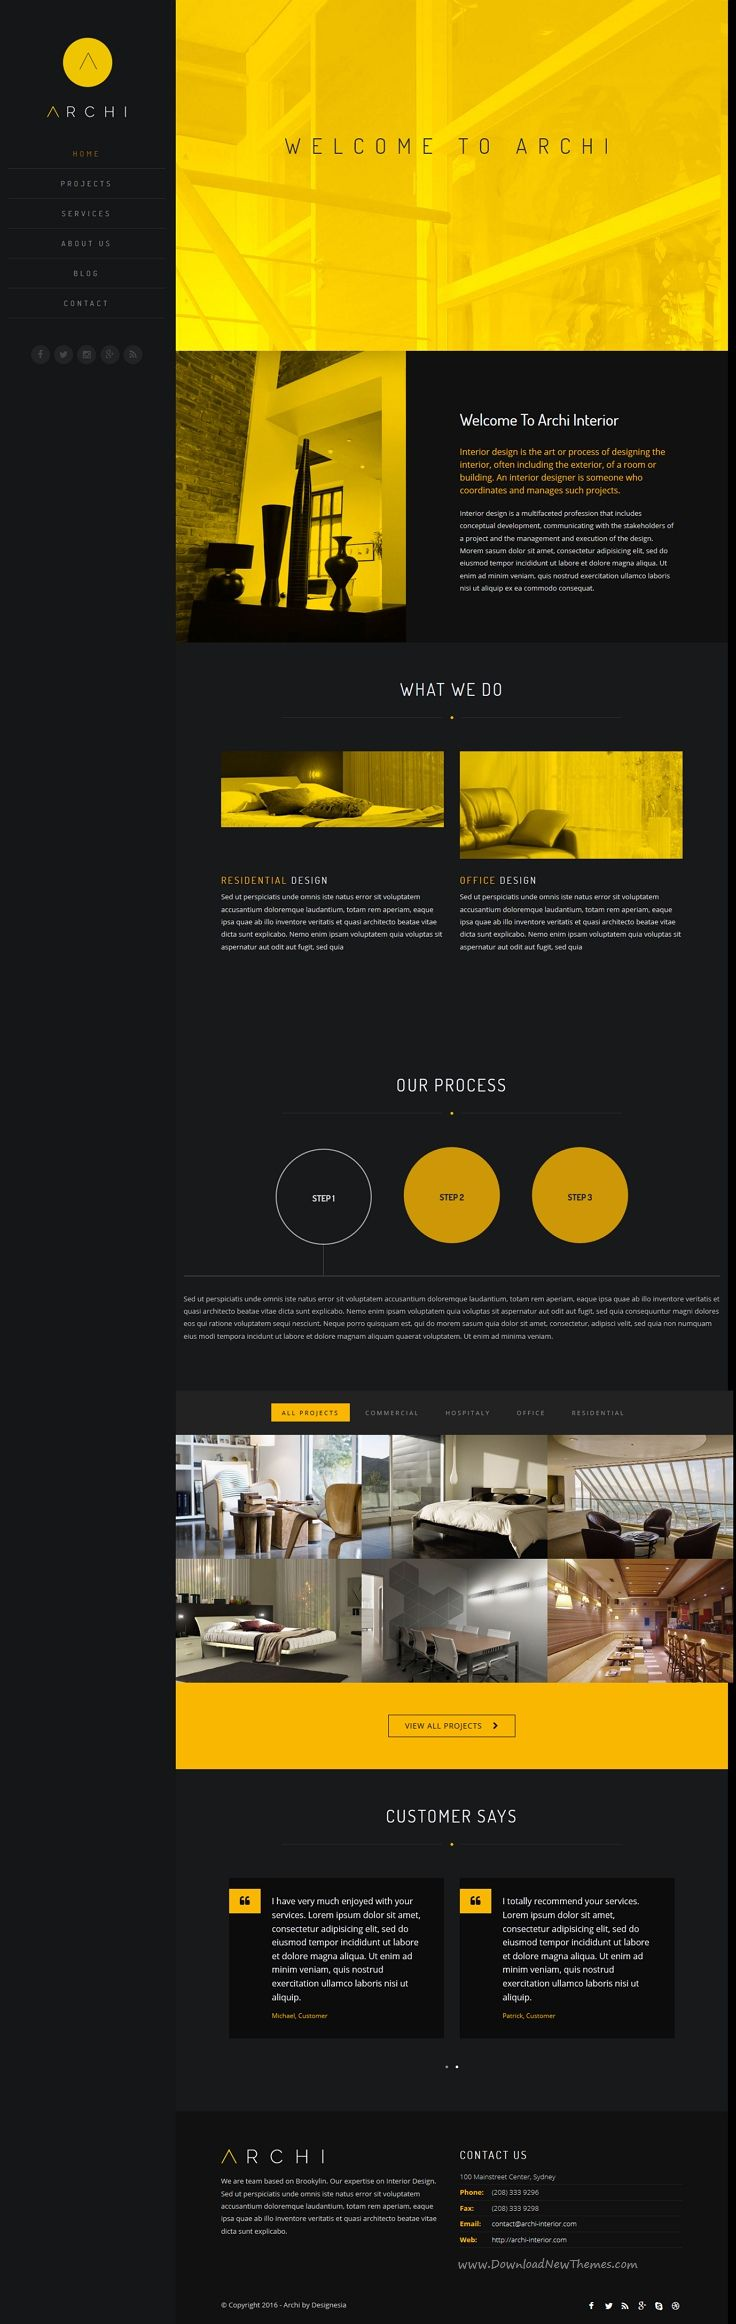 Archi Is Modern Design Premium Drupal Template For InteriorDesign Services Website With 8